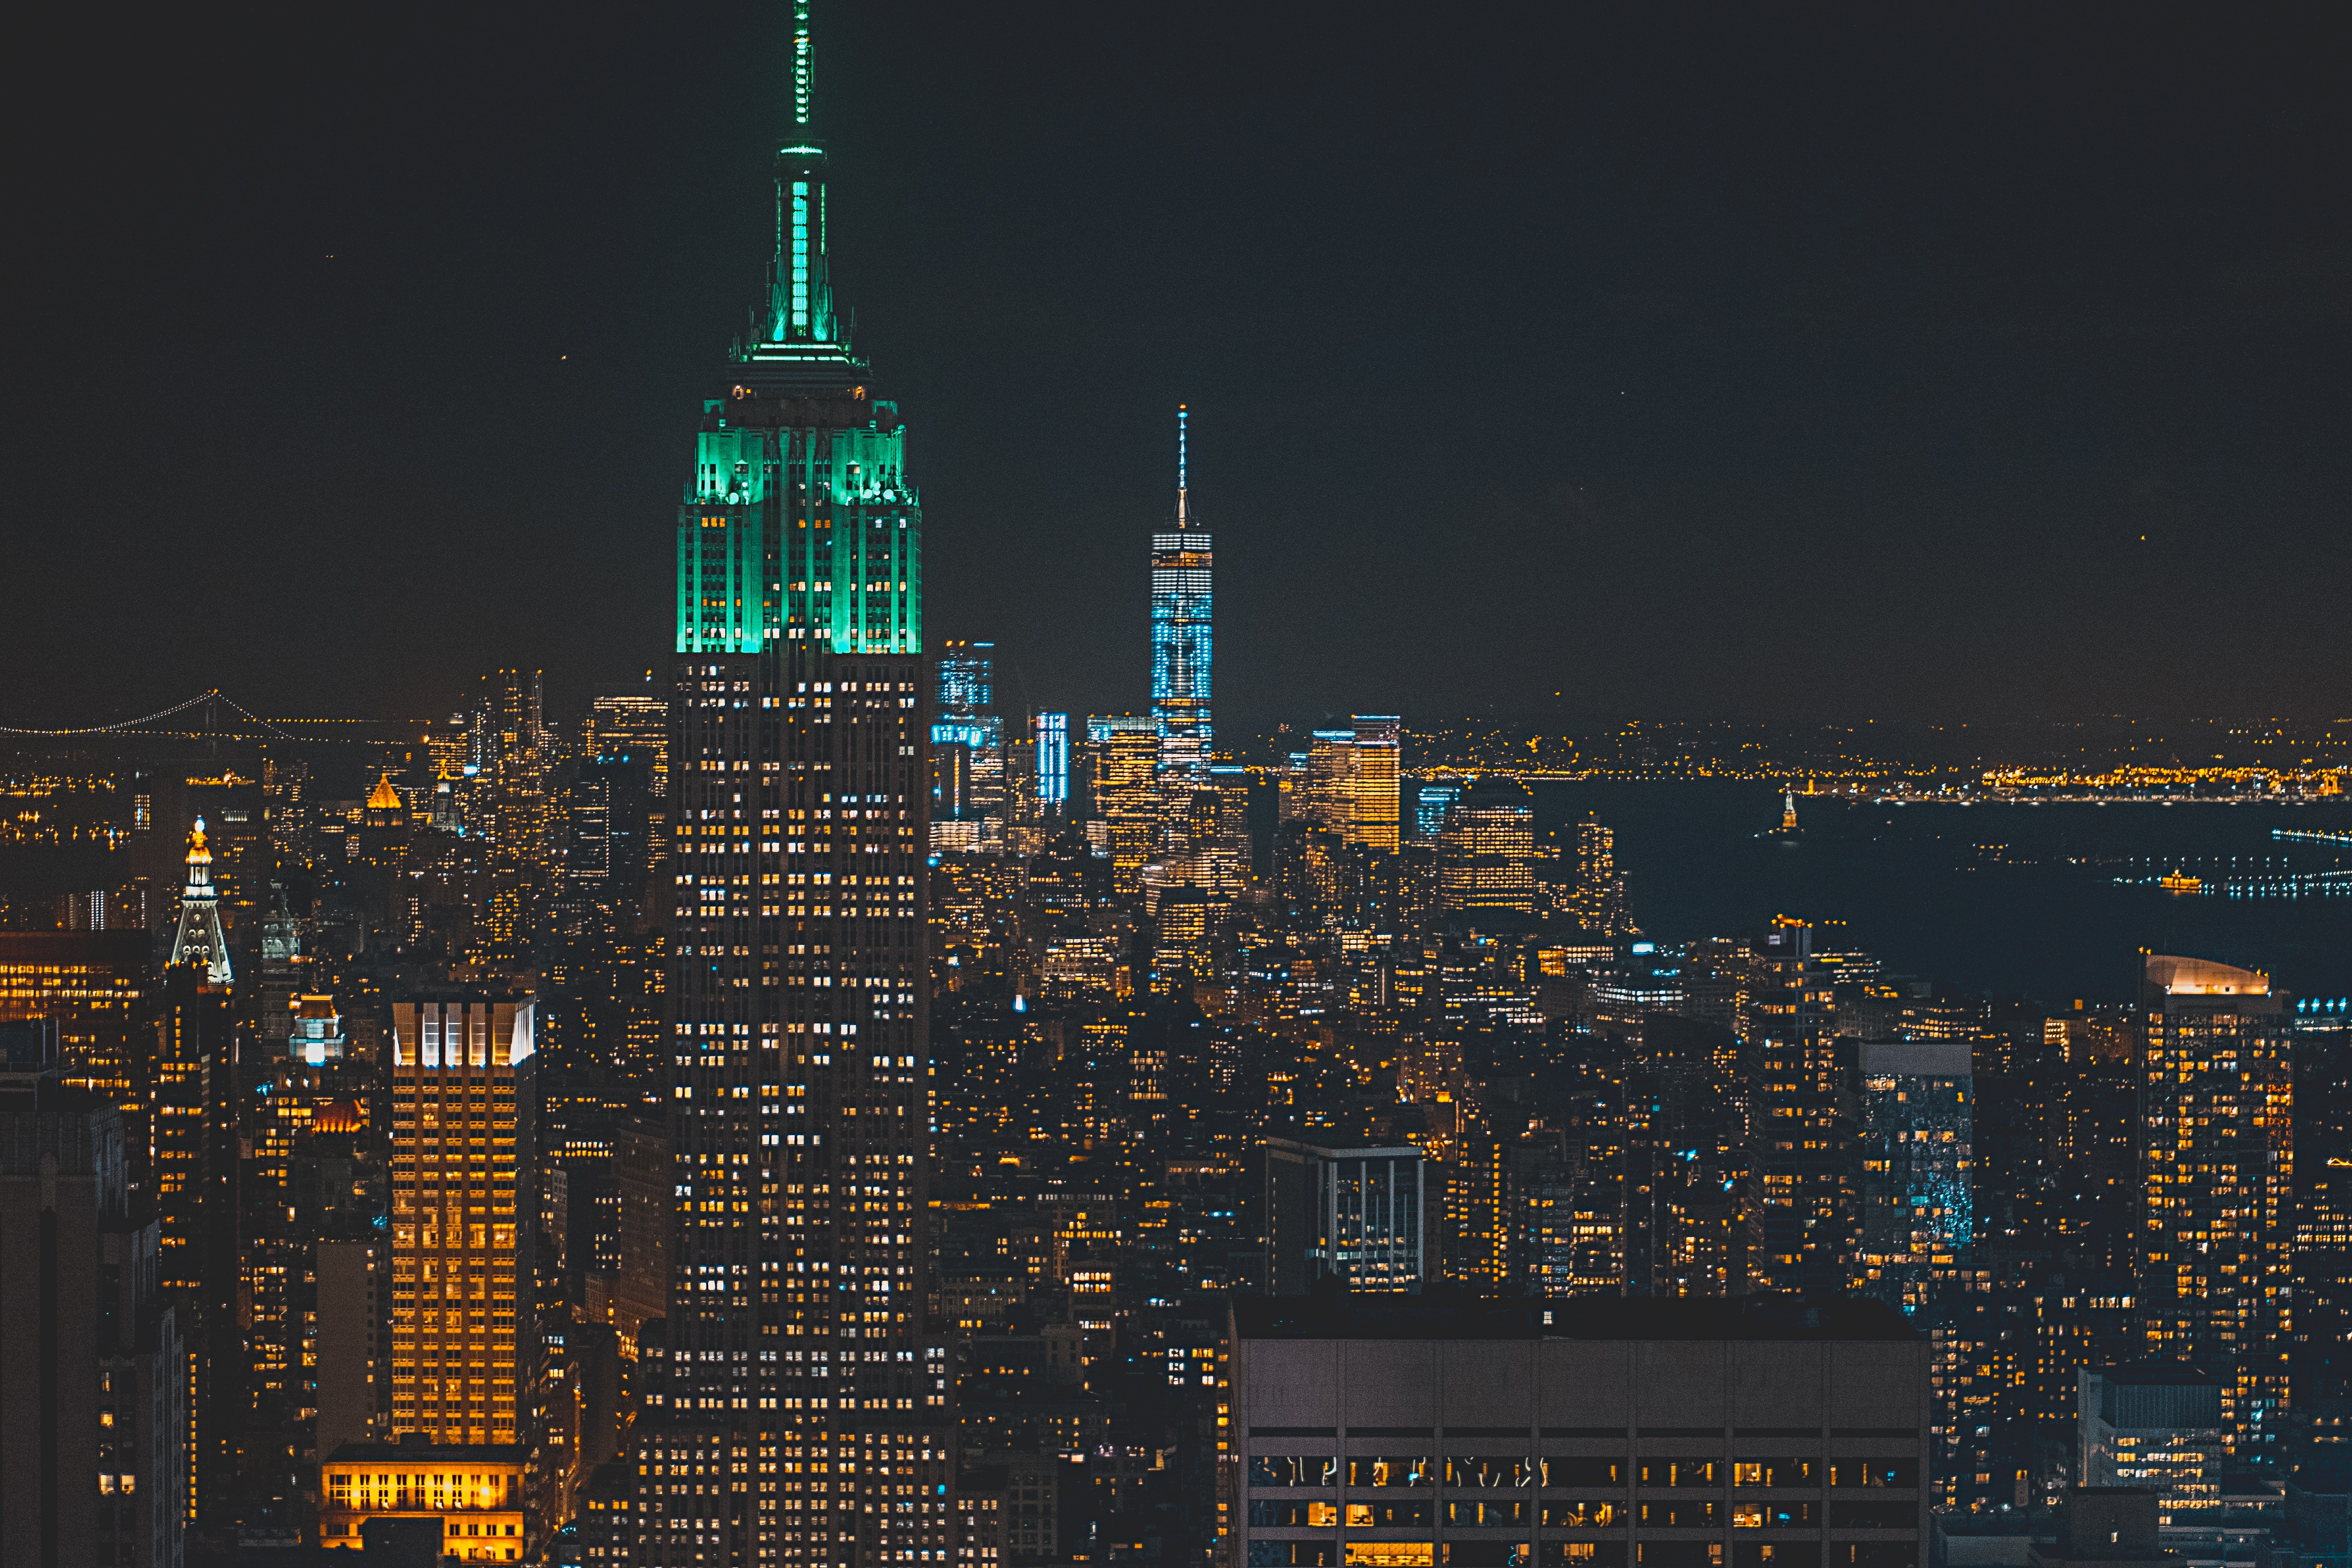 View of the Empire State Building with a NYC skyline lit up at night